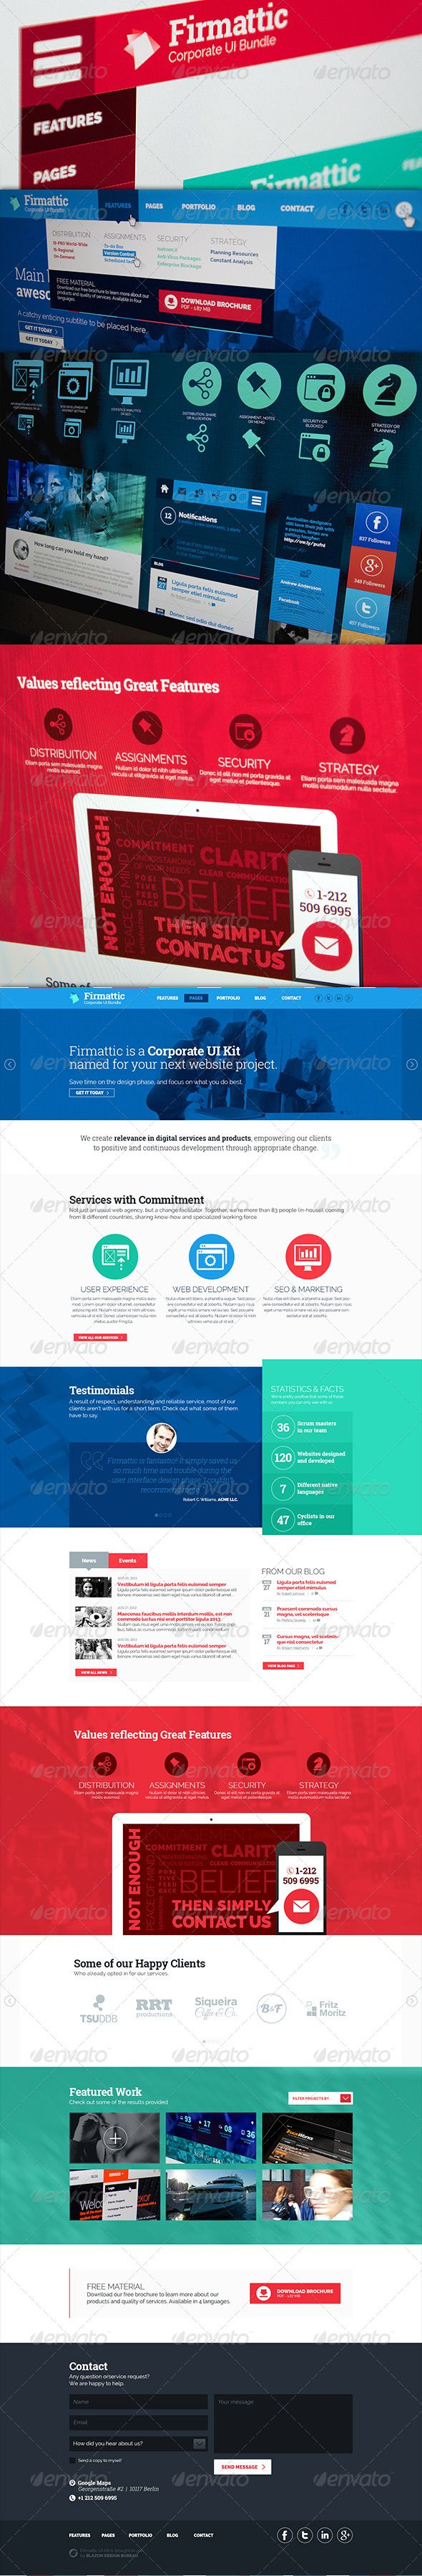 Corporate Flat UI Bundle - Website and Elements  #GraphicRiver         Firmattic is an User Interface (UI) Bundle named for your next corporate web project.  	 Contains a long website proposal in regular size and in retina (@2x) size.  	 It also contains an huge long UI Bundle psd file, with elements such as vector icons, graphic elements, featured box proposals, calendar, tags, social network and other buttons. This psd is also made in a regular and retina (@2x) size.  	 • 4 PSD files •…